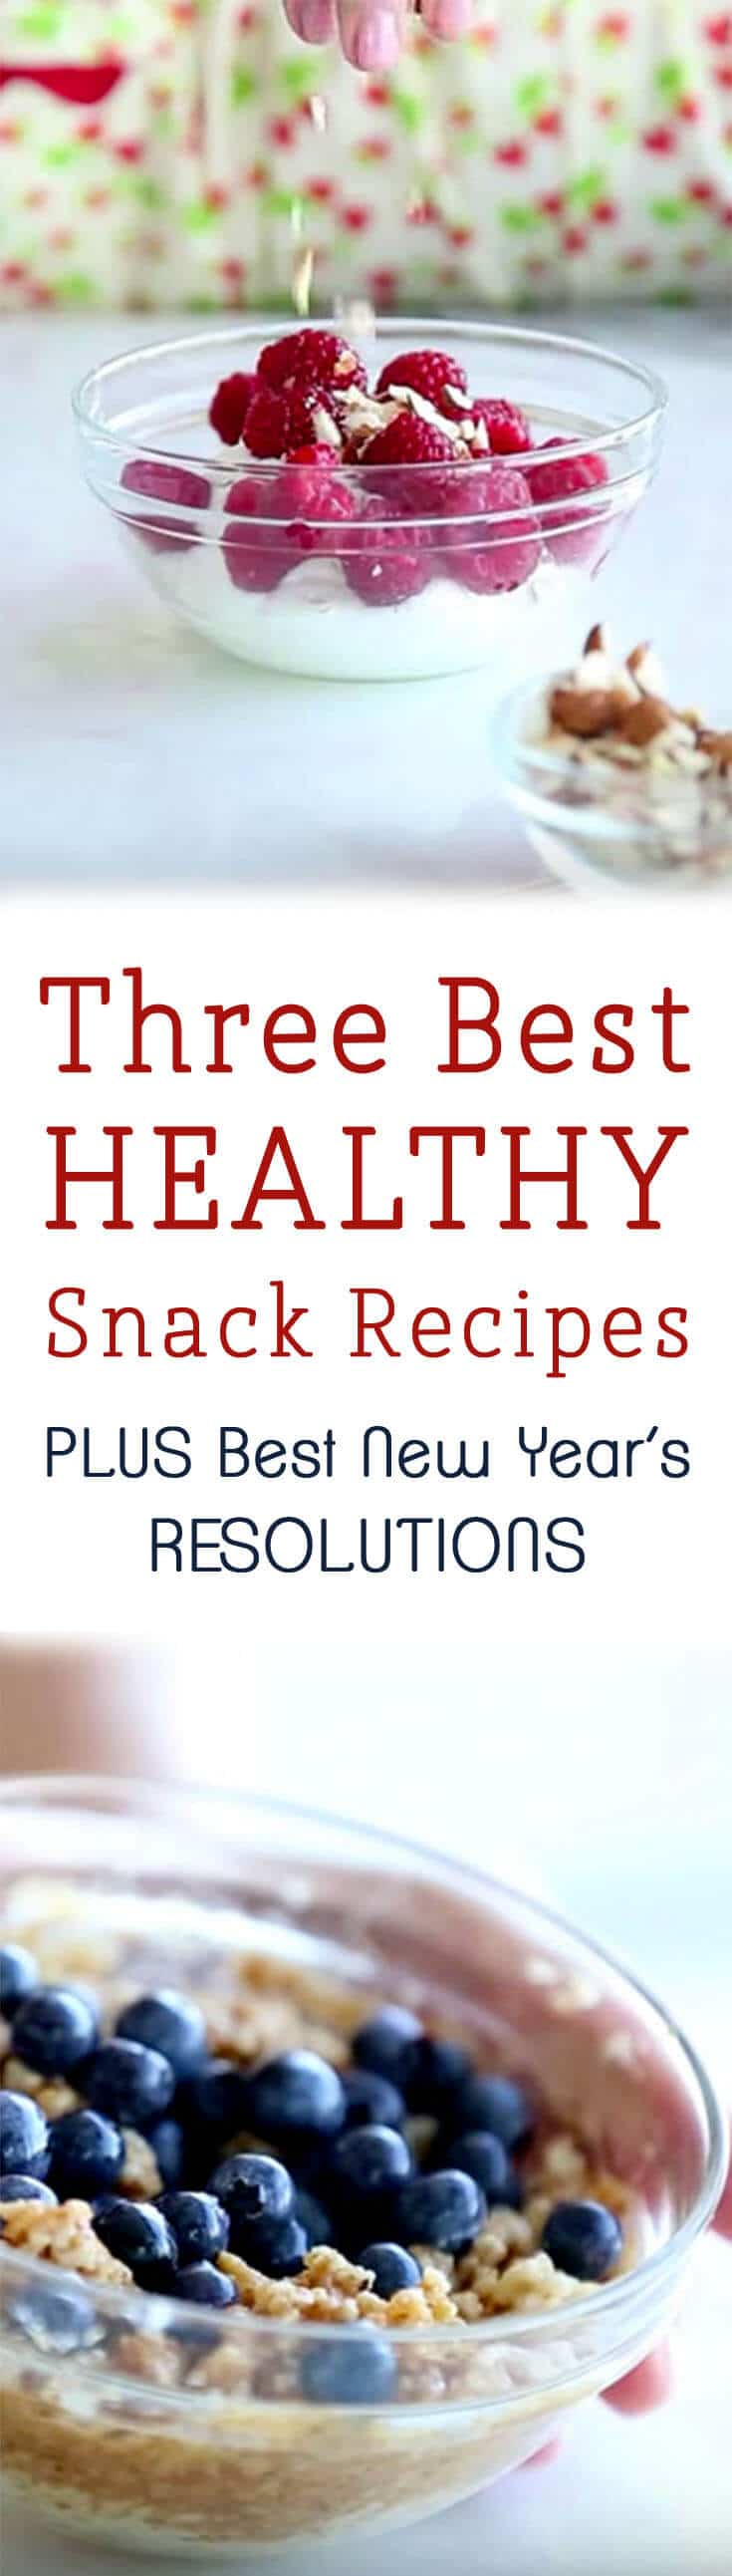 Check out these three easy healthy snack recipes under 200 calories to get you out of that classic 3PM energy slump. The key here is a combination of protein, fibre and healthy fats that you can find in power foods like almonds.